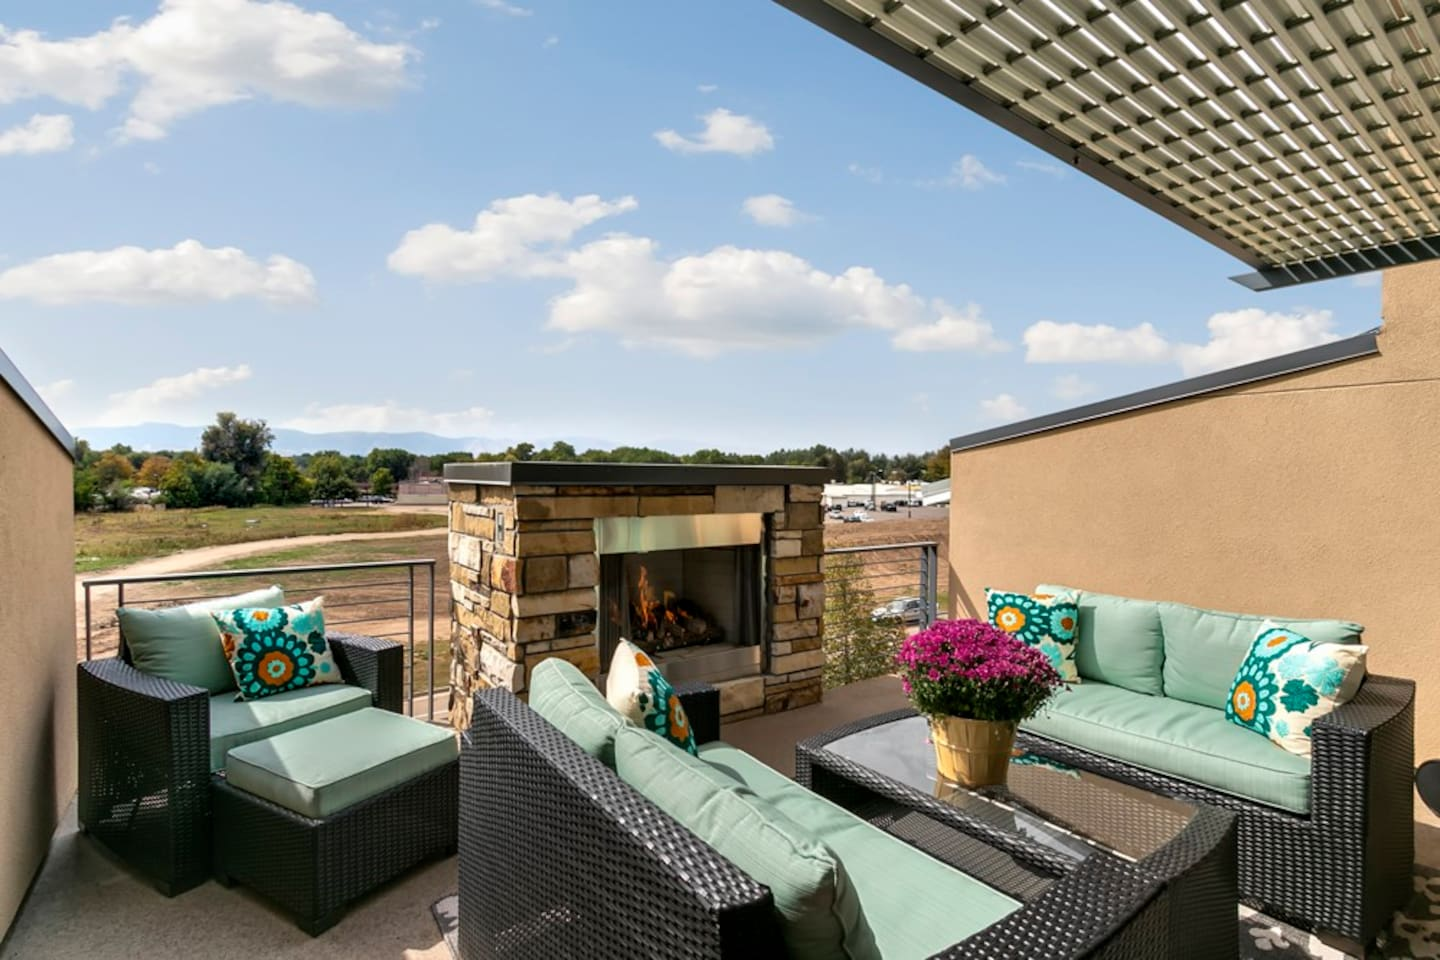 Located off of the third floor, balcony features beautiful views of the front range mountains. Great place to enjoy a morning cup of coffee or unwind with a glass of wine at the end of the day.